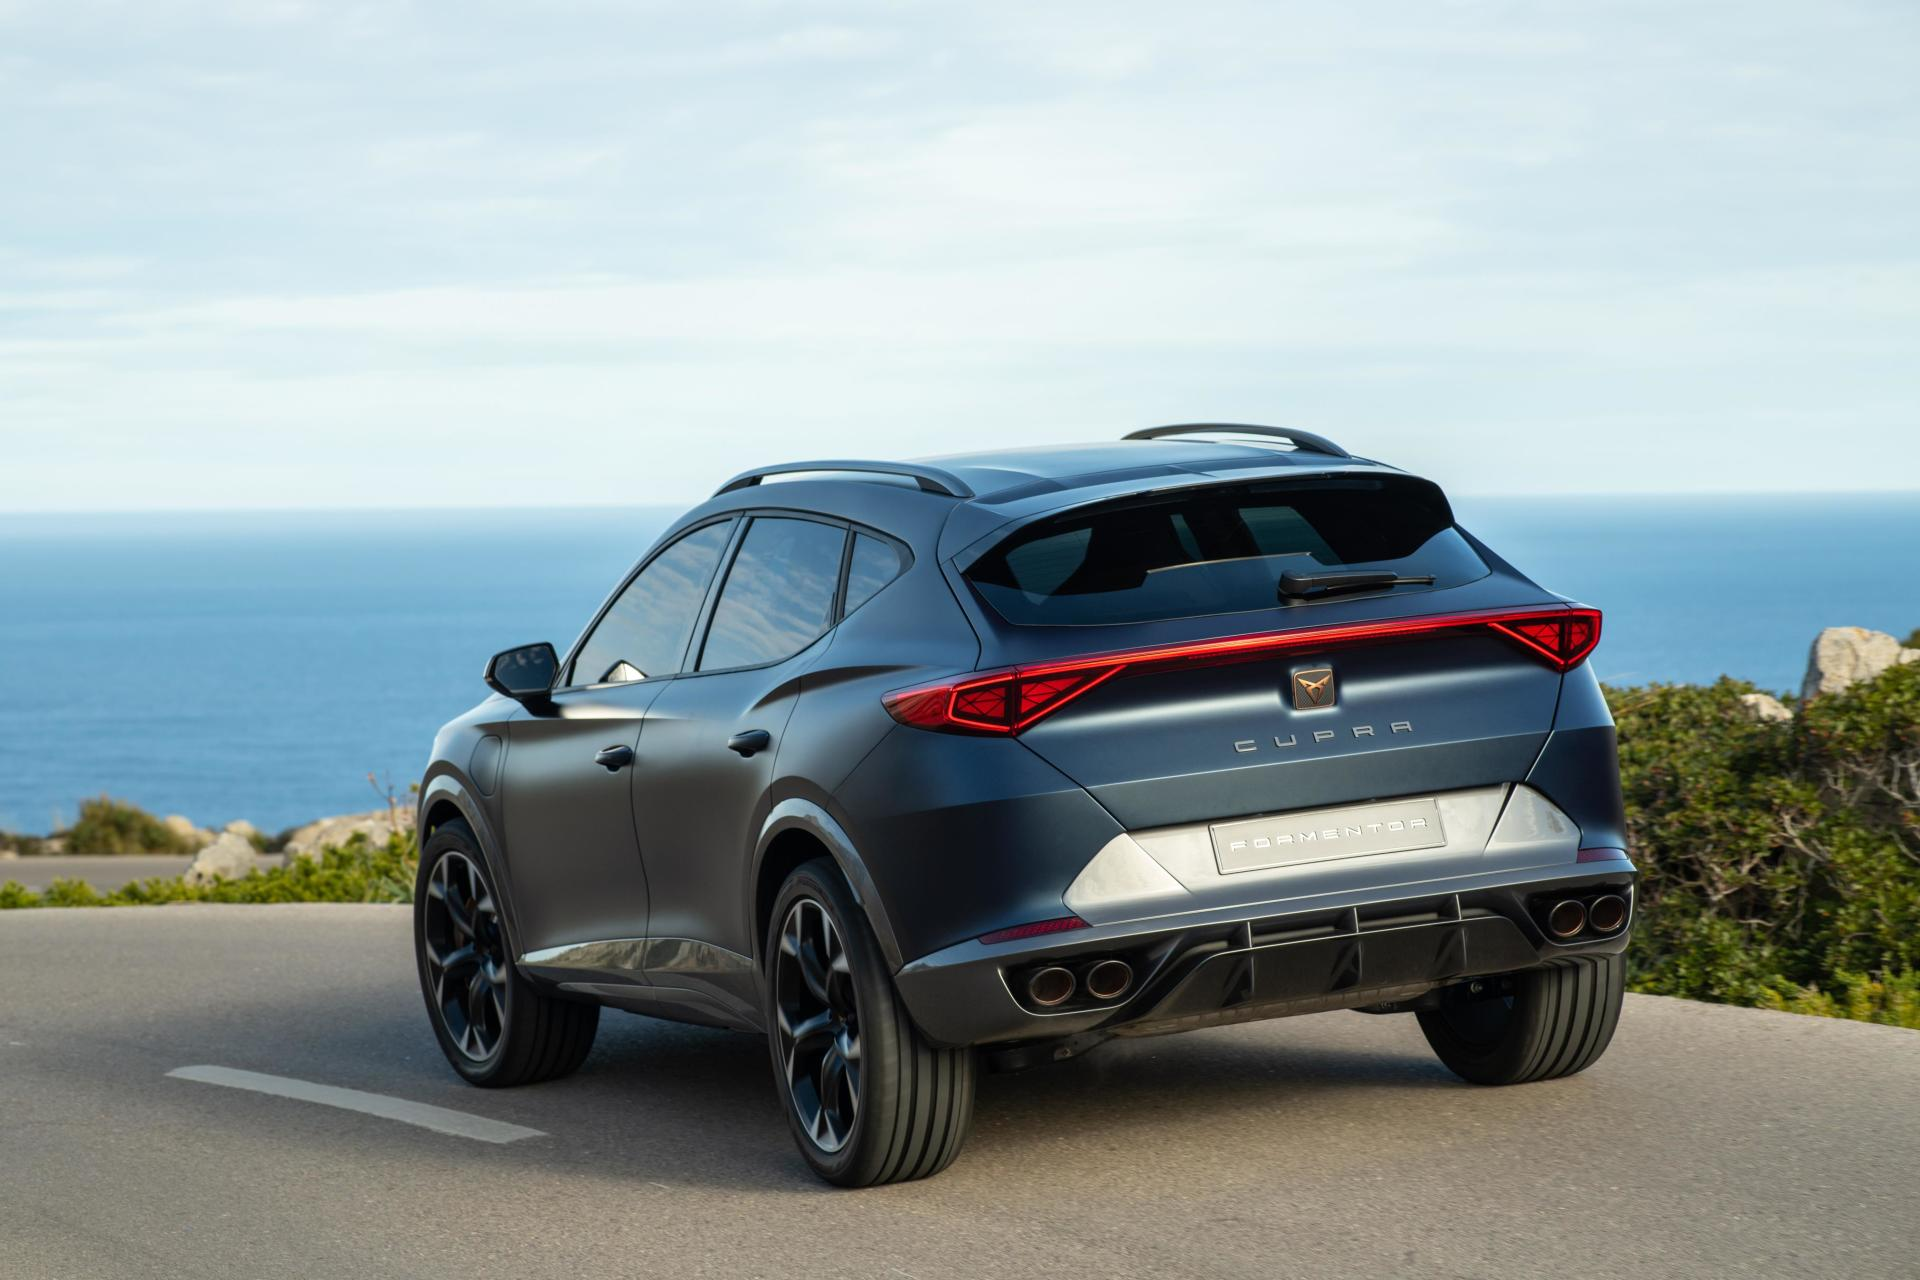 Cupra Forrmentor 1729512 First Dynamic Pictures Of Cupra Formentor Revealed 210519 5